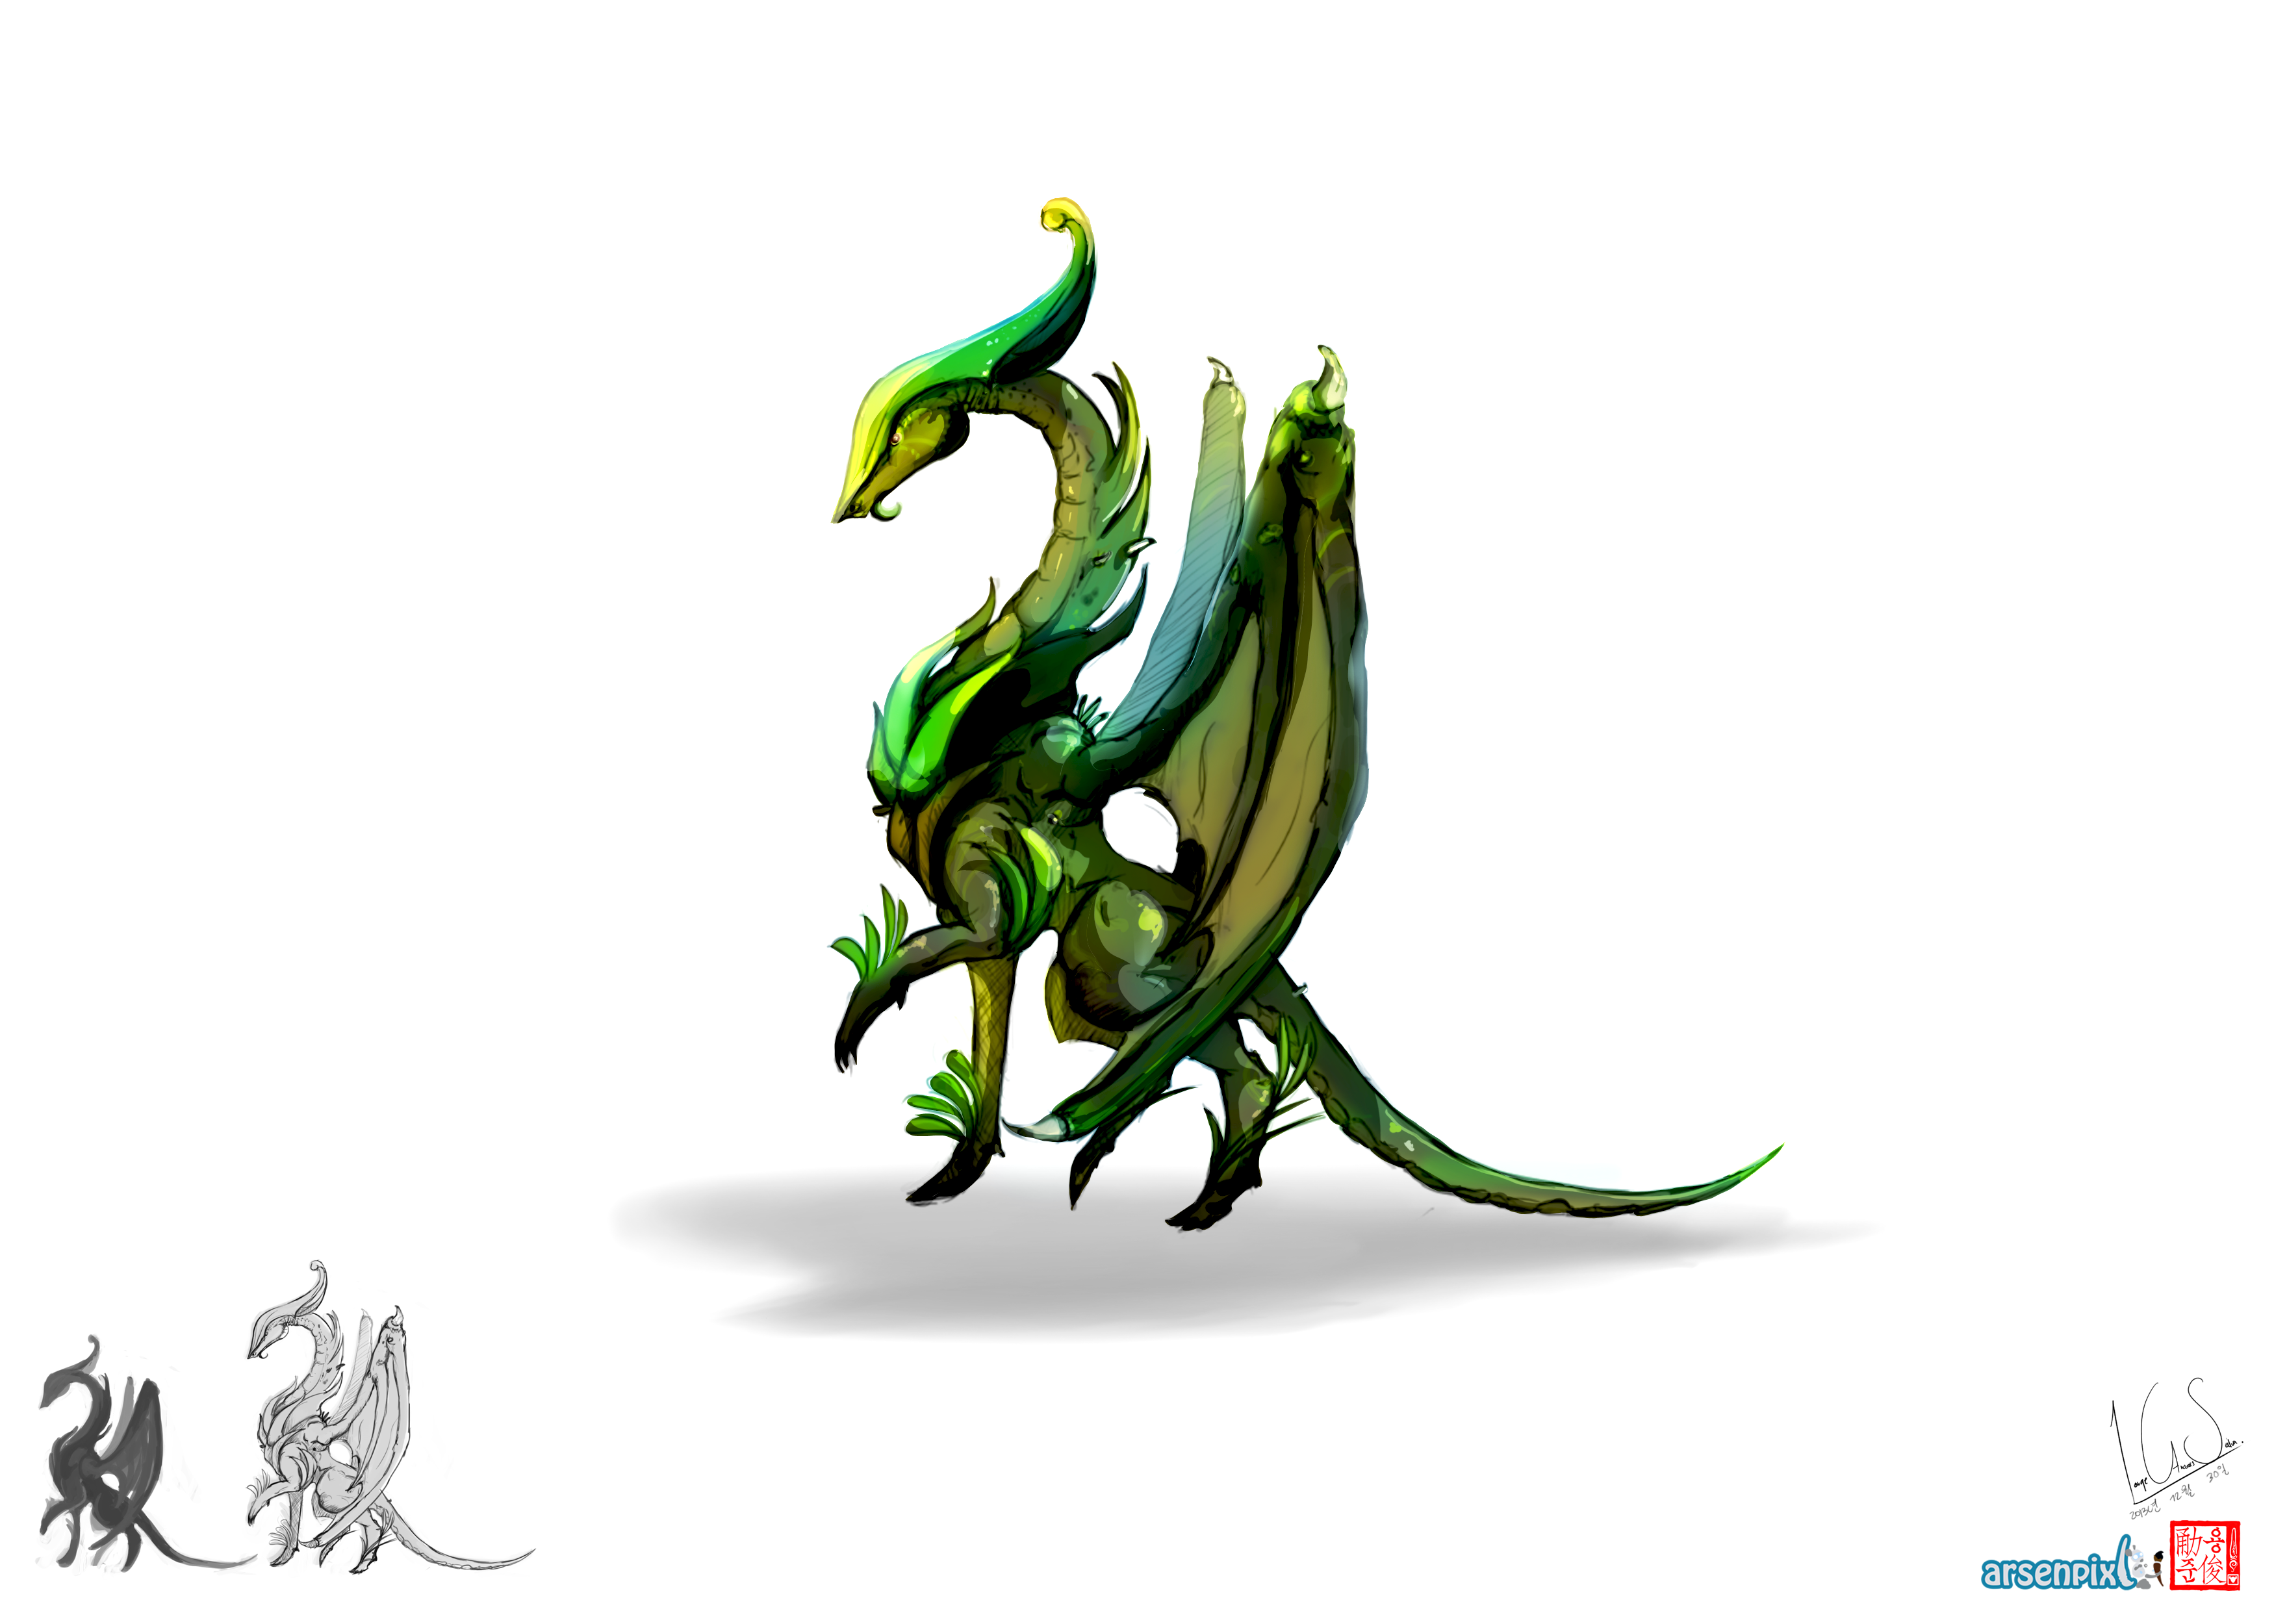 Concept Art: Dragon types - Colouring sketches  - image 2 - student project